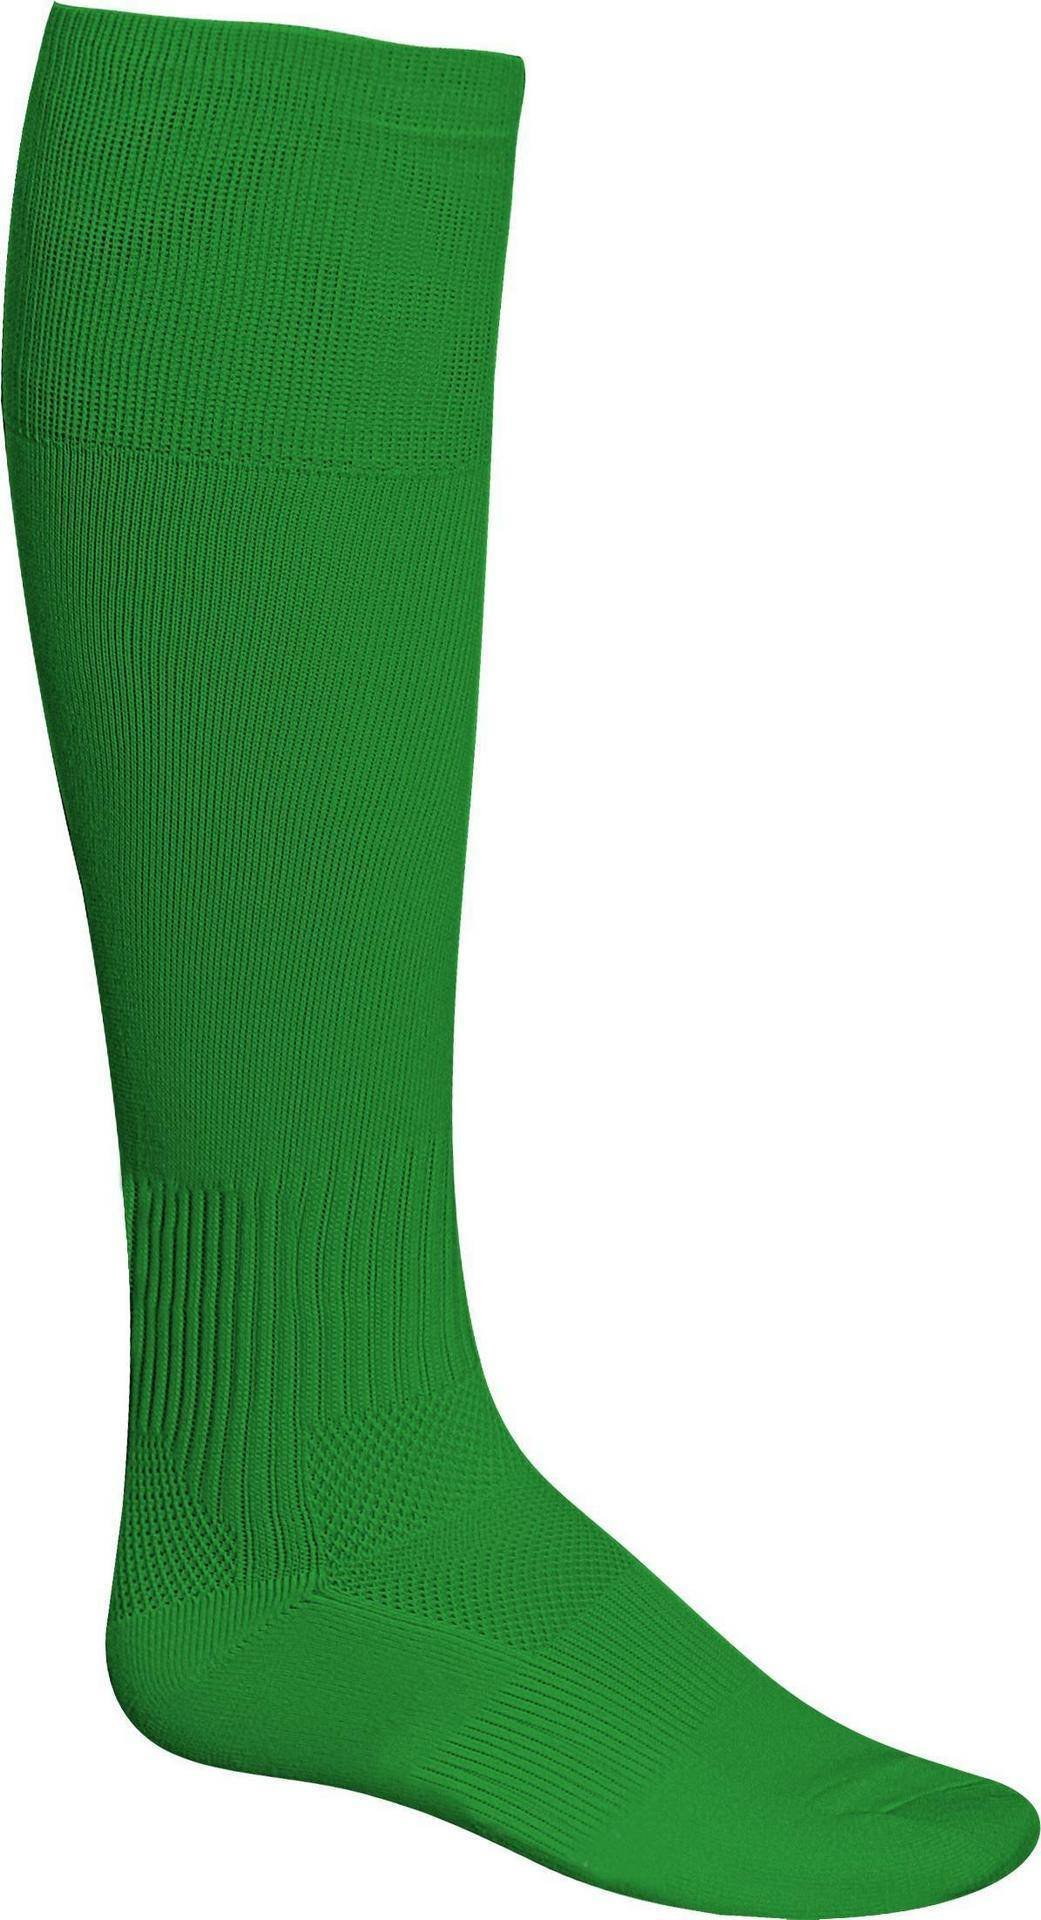 Admiral Professional Soccer Socks, Emerald, Junior by Admiral